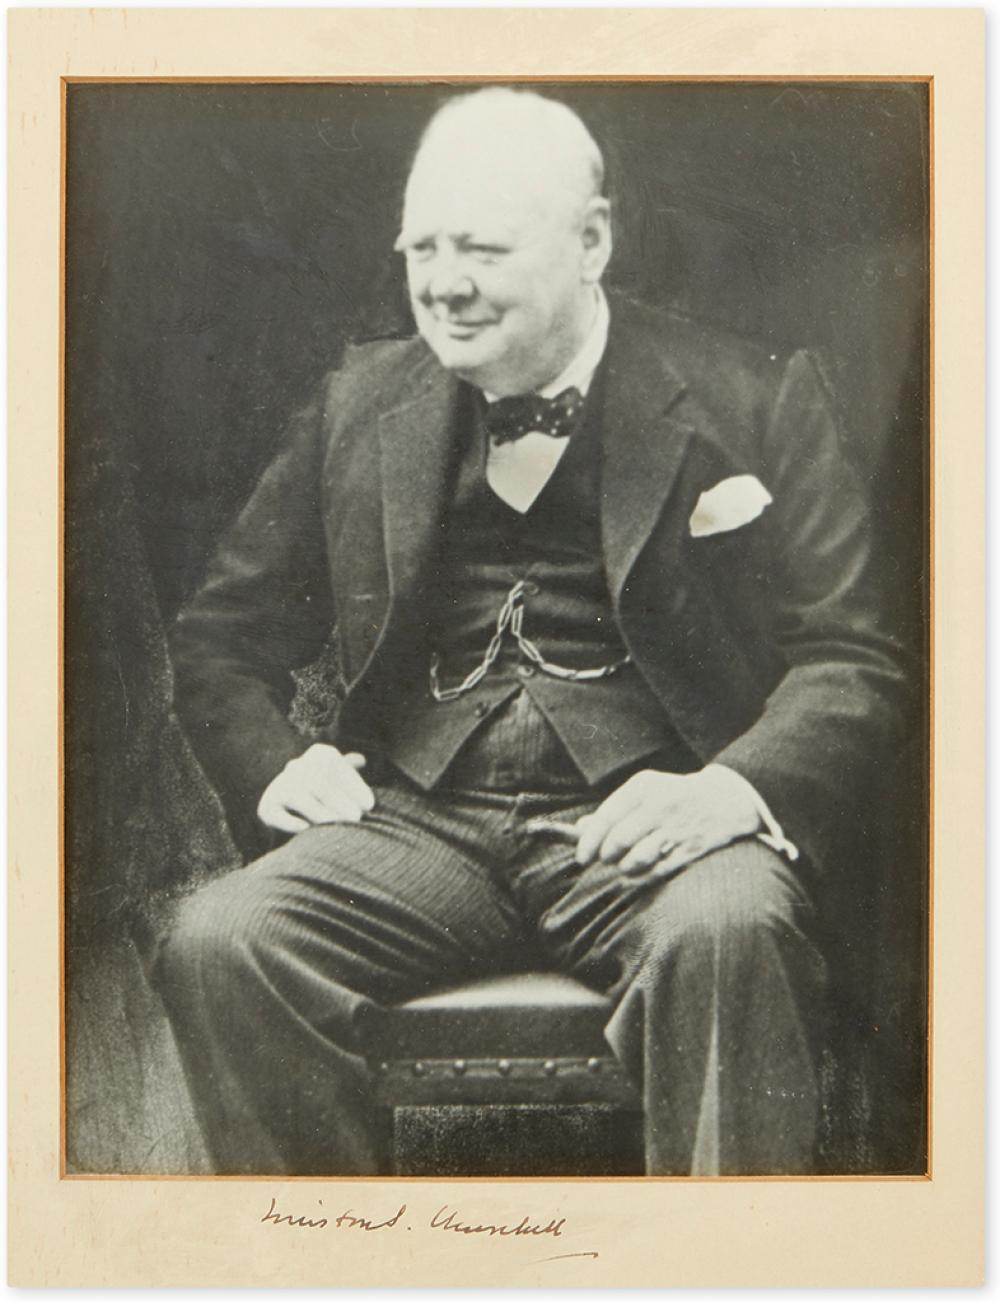 CHURCHILL, WINSTON S. Photograph Signed, ¾-length seated portrait, showing the Prime Minister smiling.